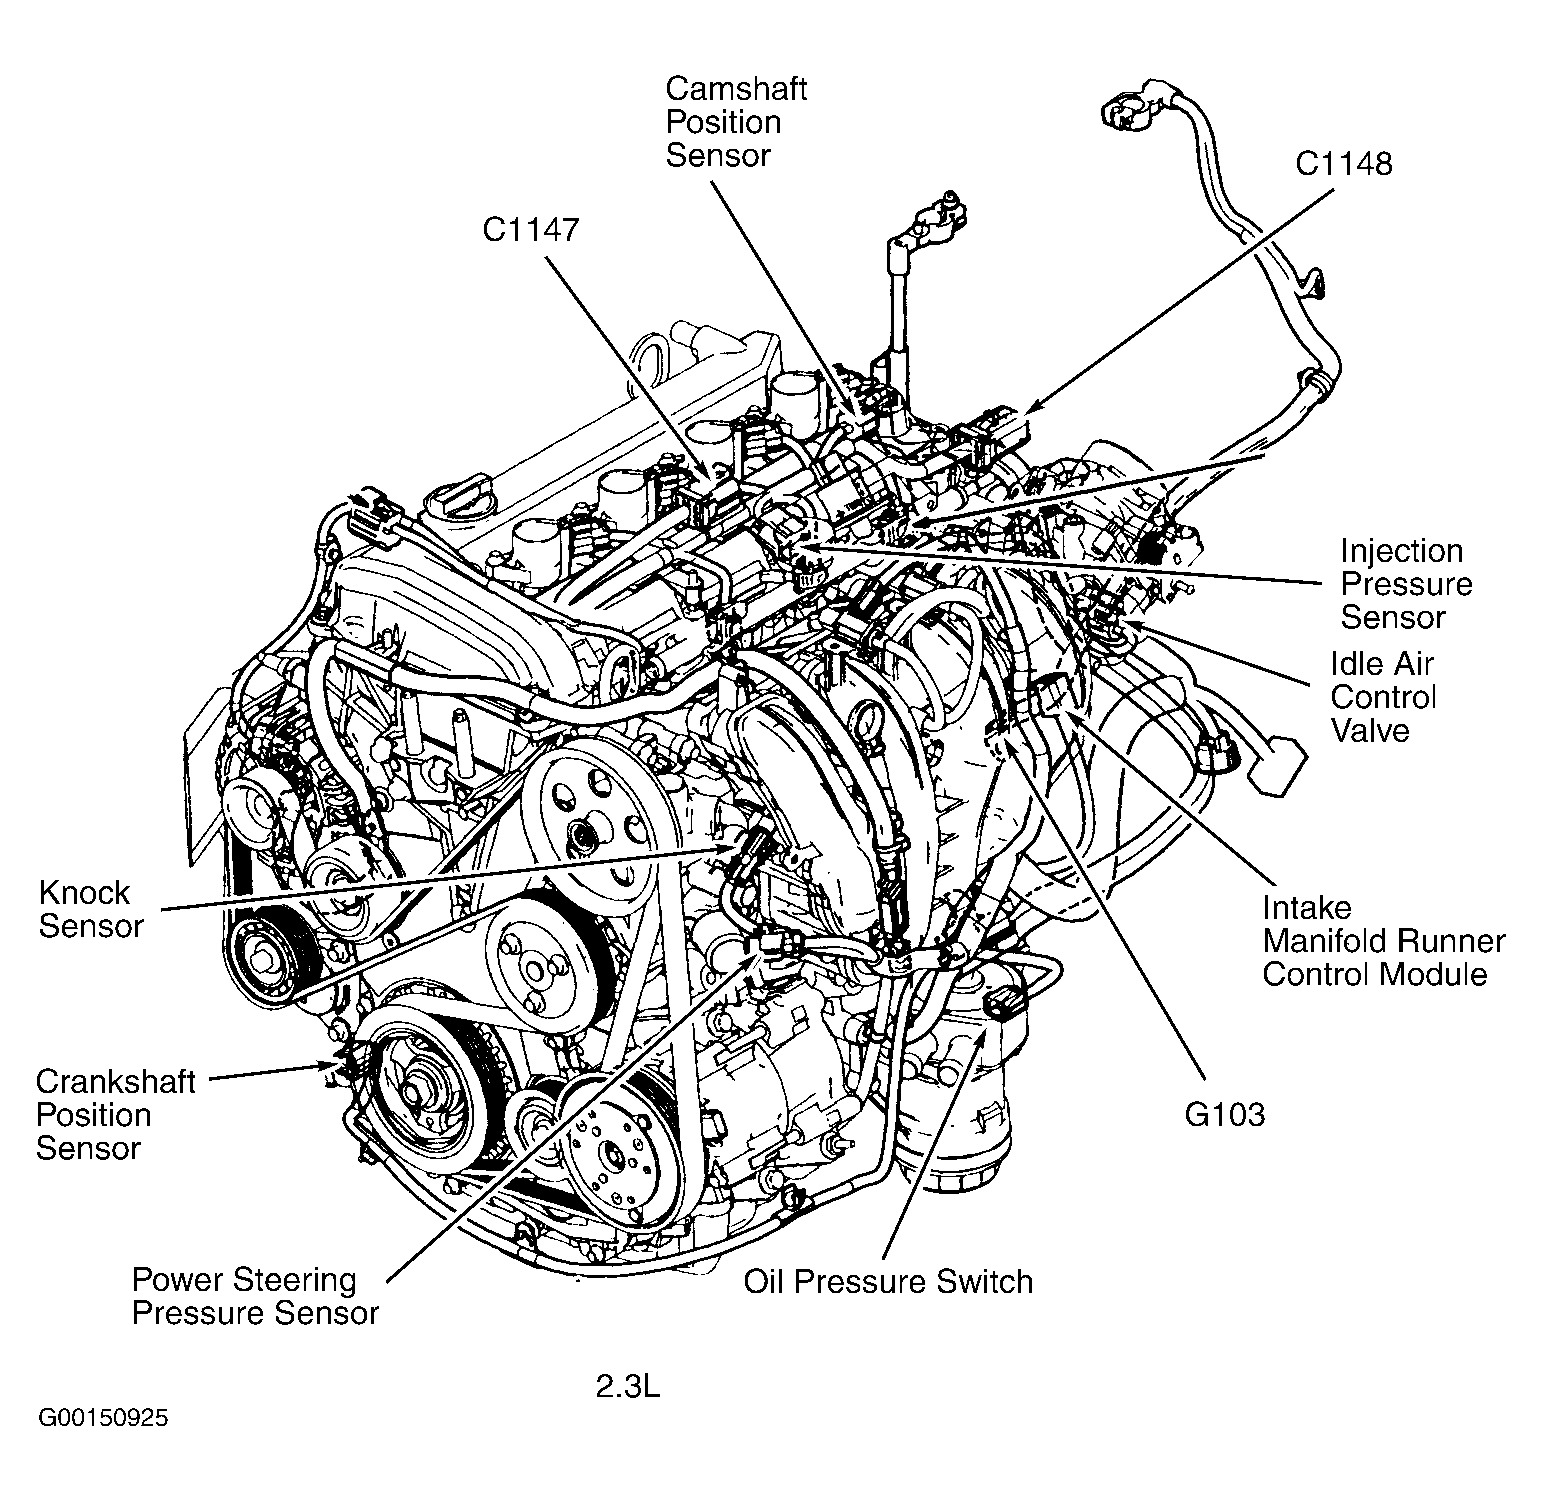 Ford Focus Zx3 Zetec 2 0 Engine Diagrams Ford Engine